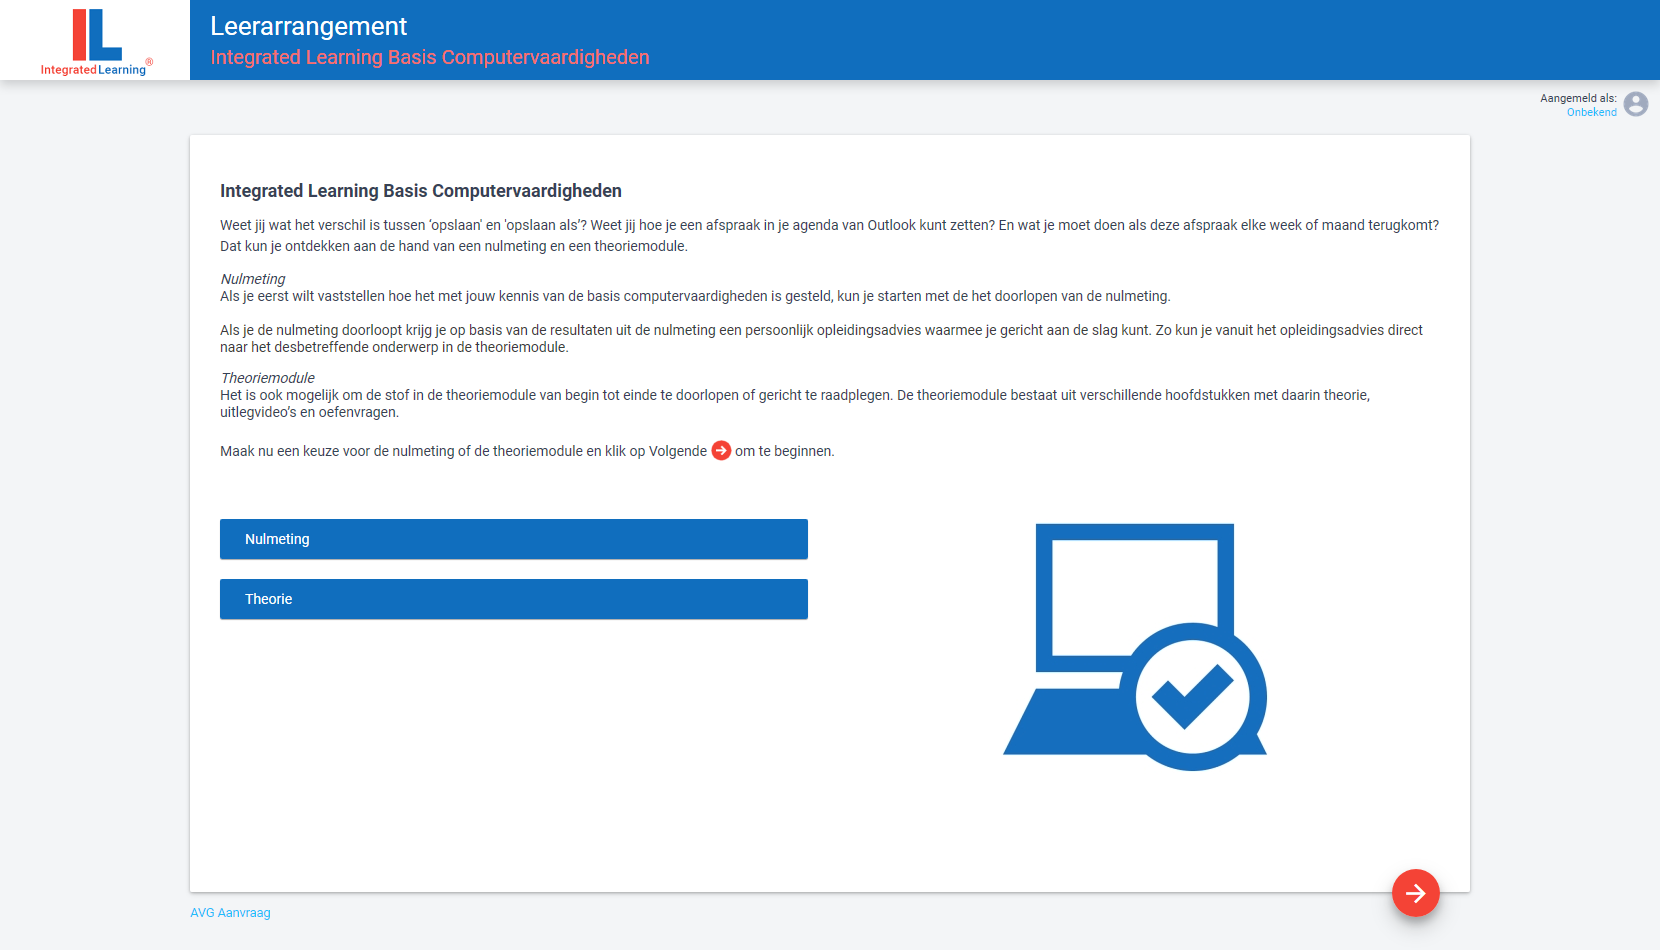 Integrated Learning Basis Computervaardigheden portal